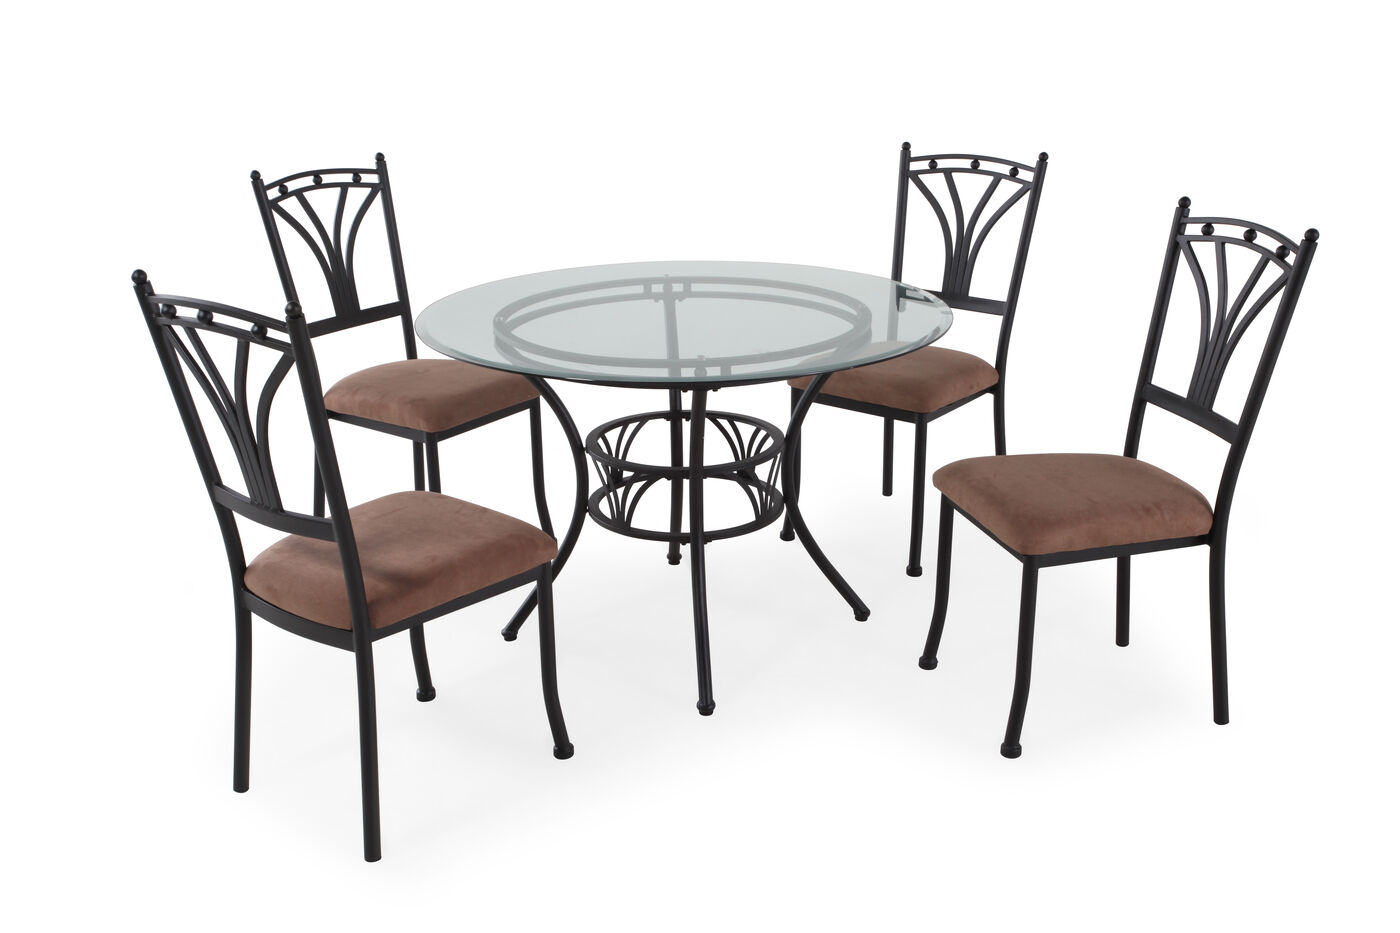 MB Home Five Piece Dining Set Mathis Brothers Furniture